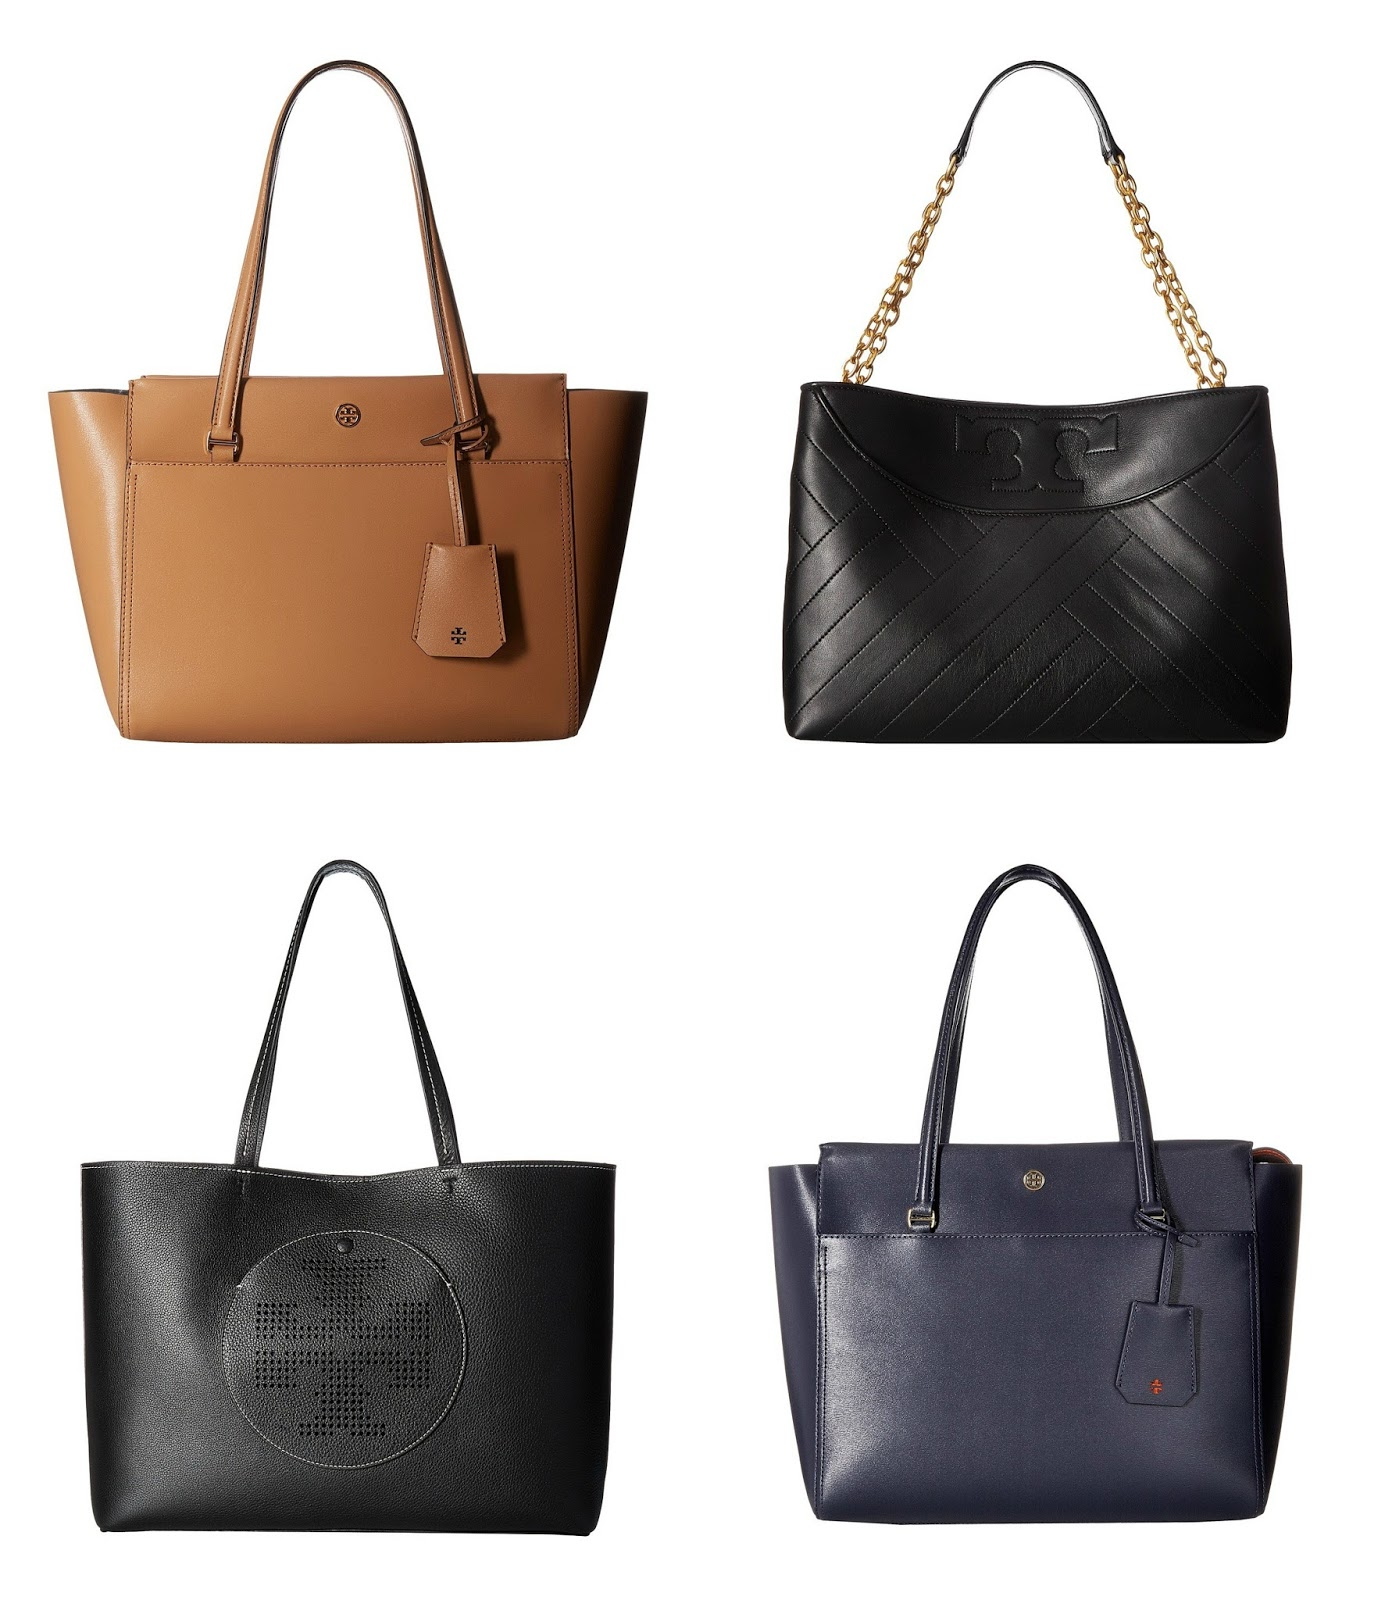 4f62f7e5e82 These Tory Burch handbags are ALL 50% OFF + free shipping! There are many  more options on sale too! These are some of the lowest prices I have ever  seen for ...